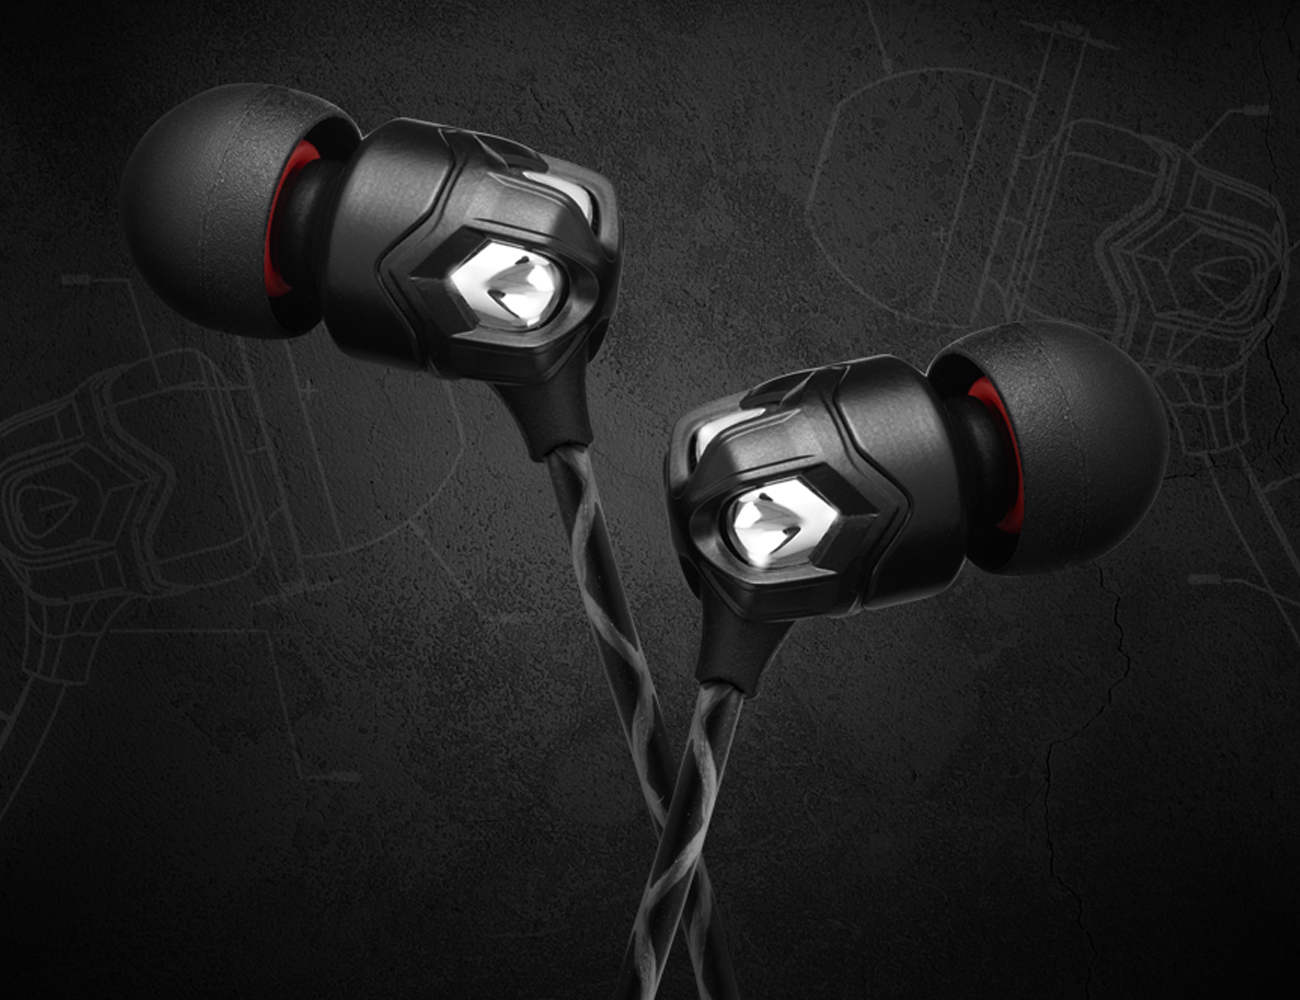 V-MODA Zn – Limited Edition In-Ear Headphones